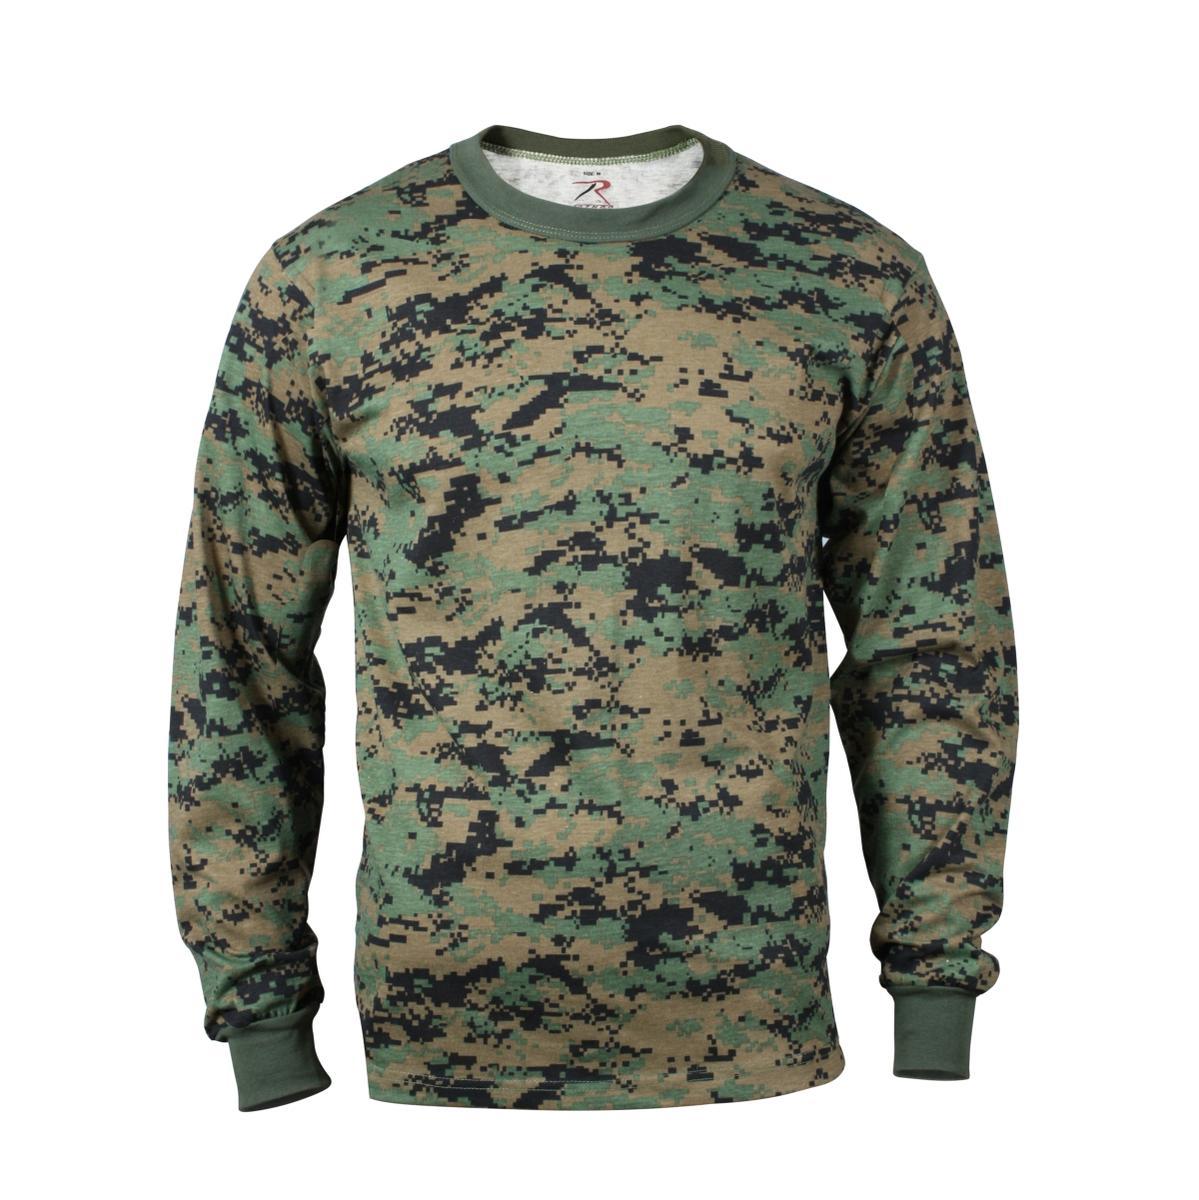 Woodland Digital Camo Long Sleeve Mens T-shirt by Rothco